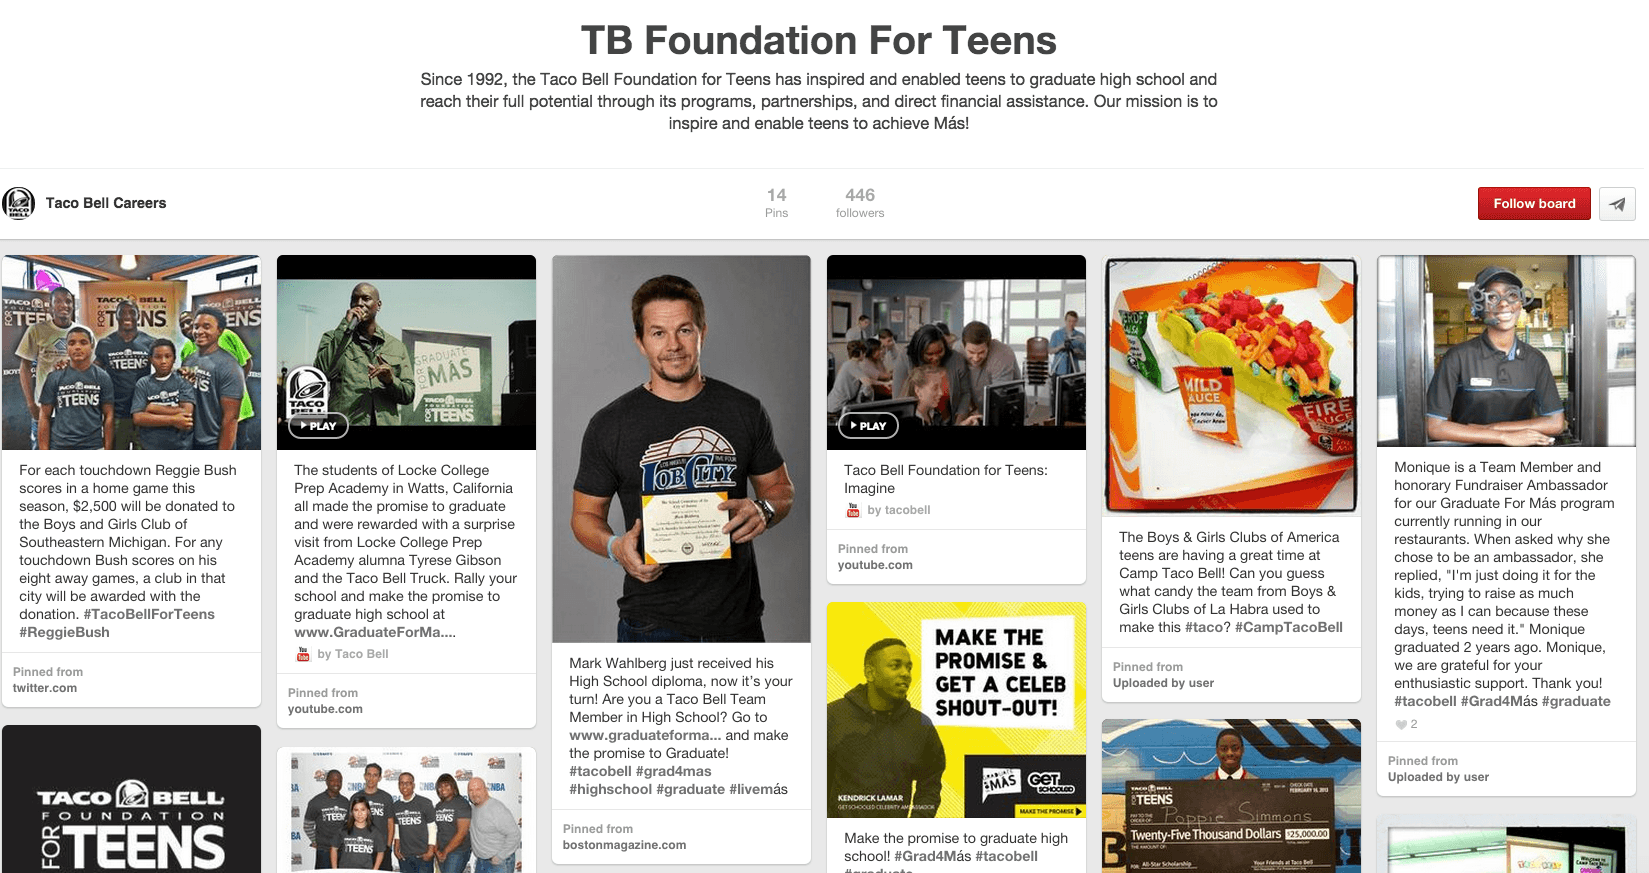 TB Foundation for Teens - Taco Bell Pinterest careers board